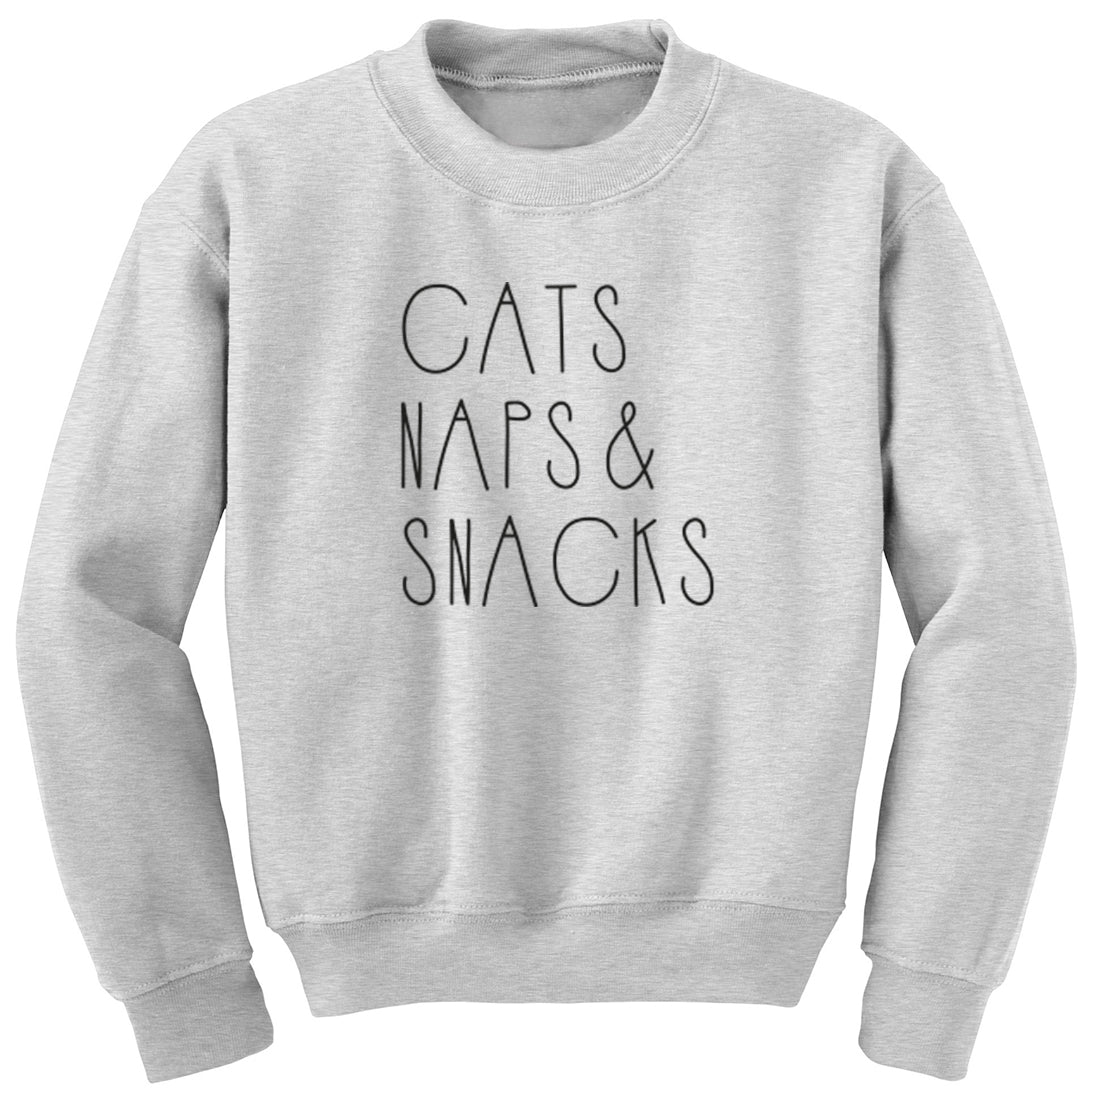 Cats Naps & Snacks Childrens Ages 3/4-12/14 Unisex Jumper K1834